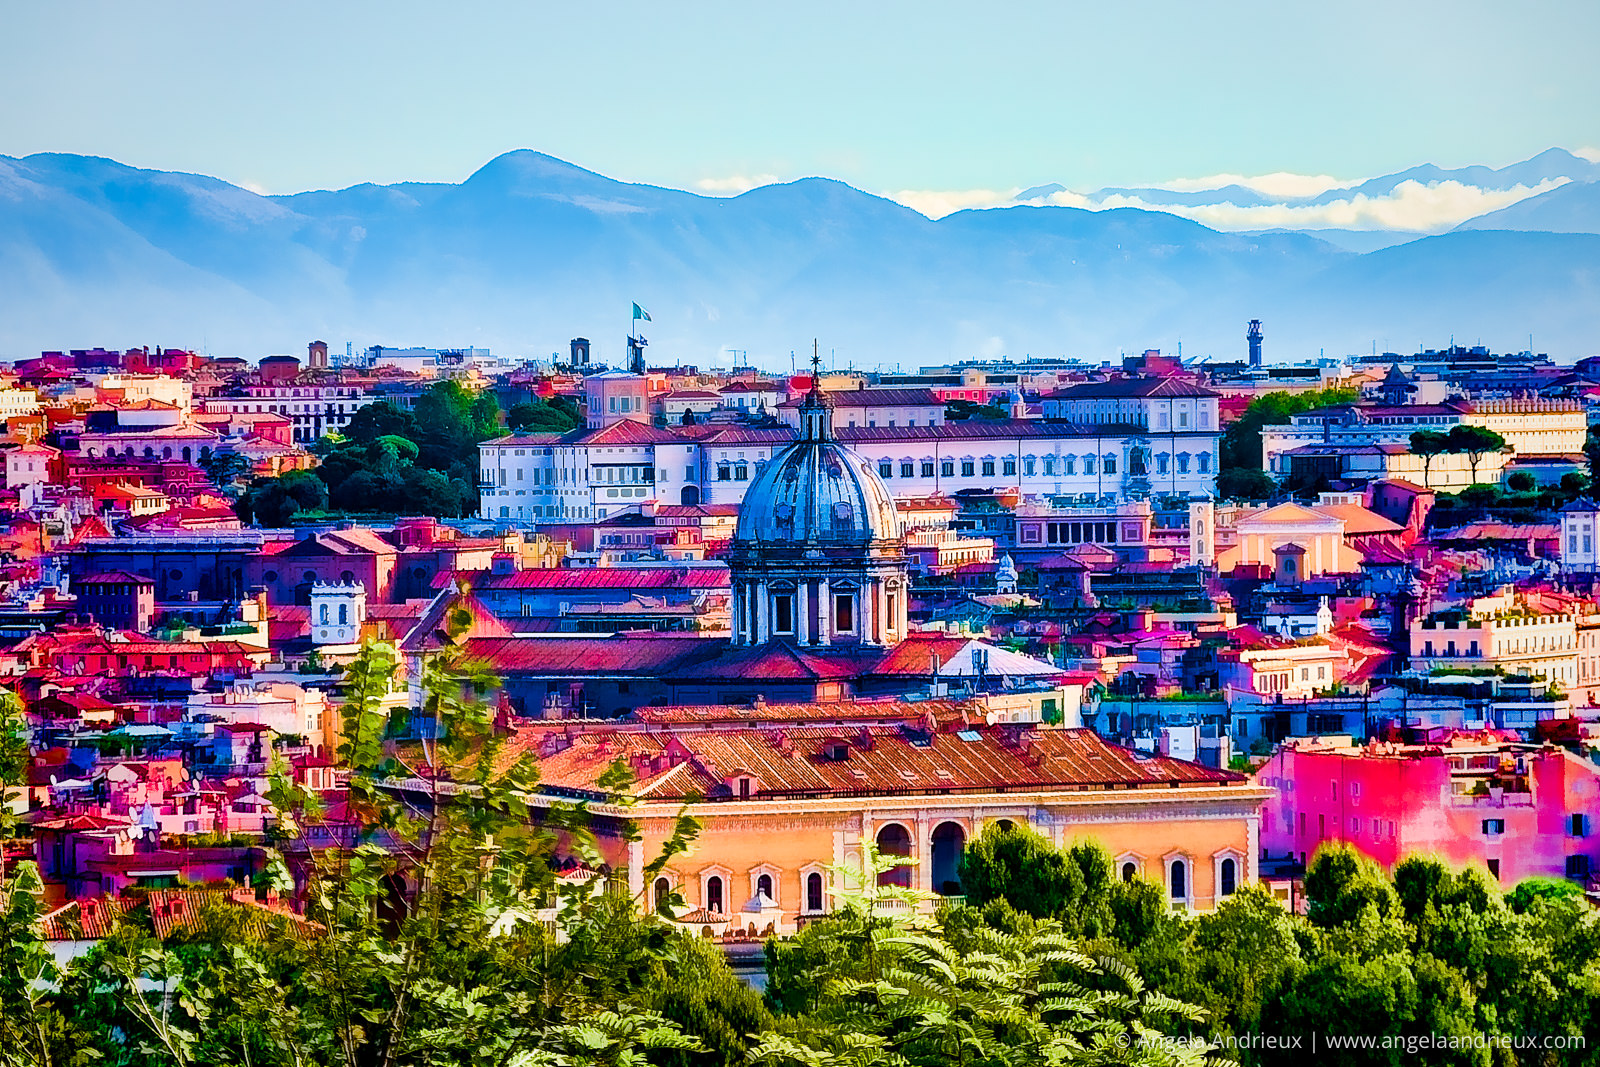 Bright Color Interpretation of Rome, Italy | Made With Topaz Plugins